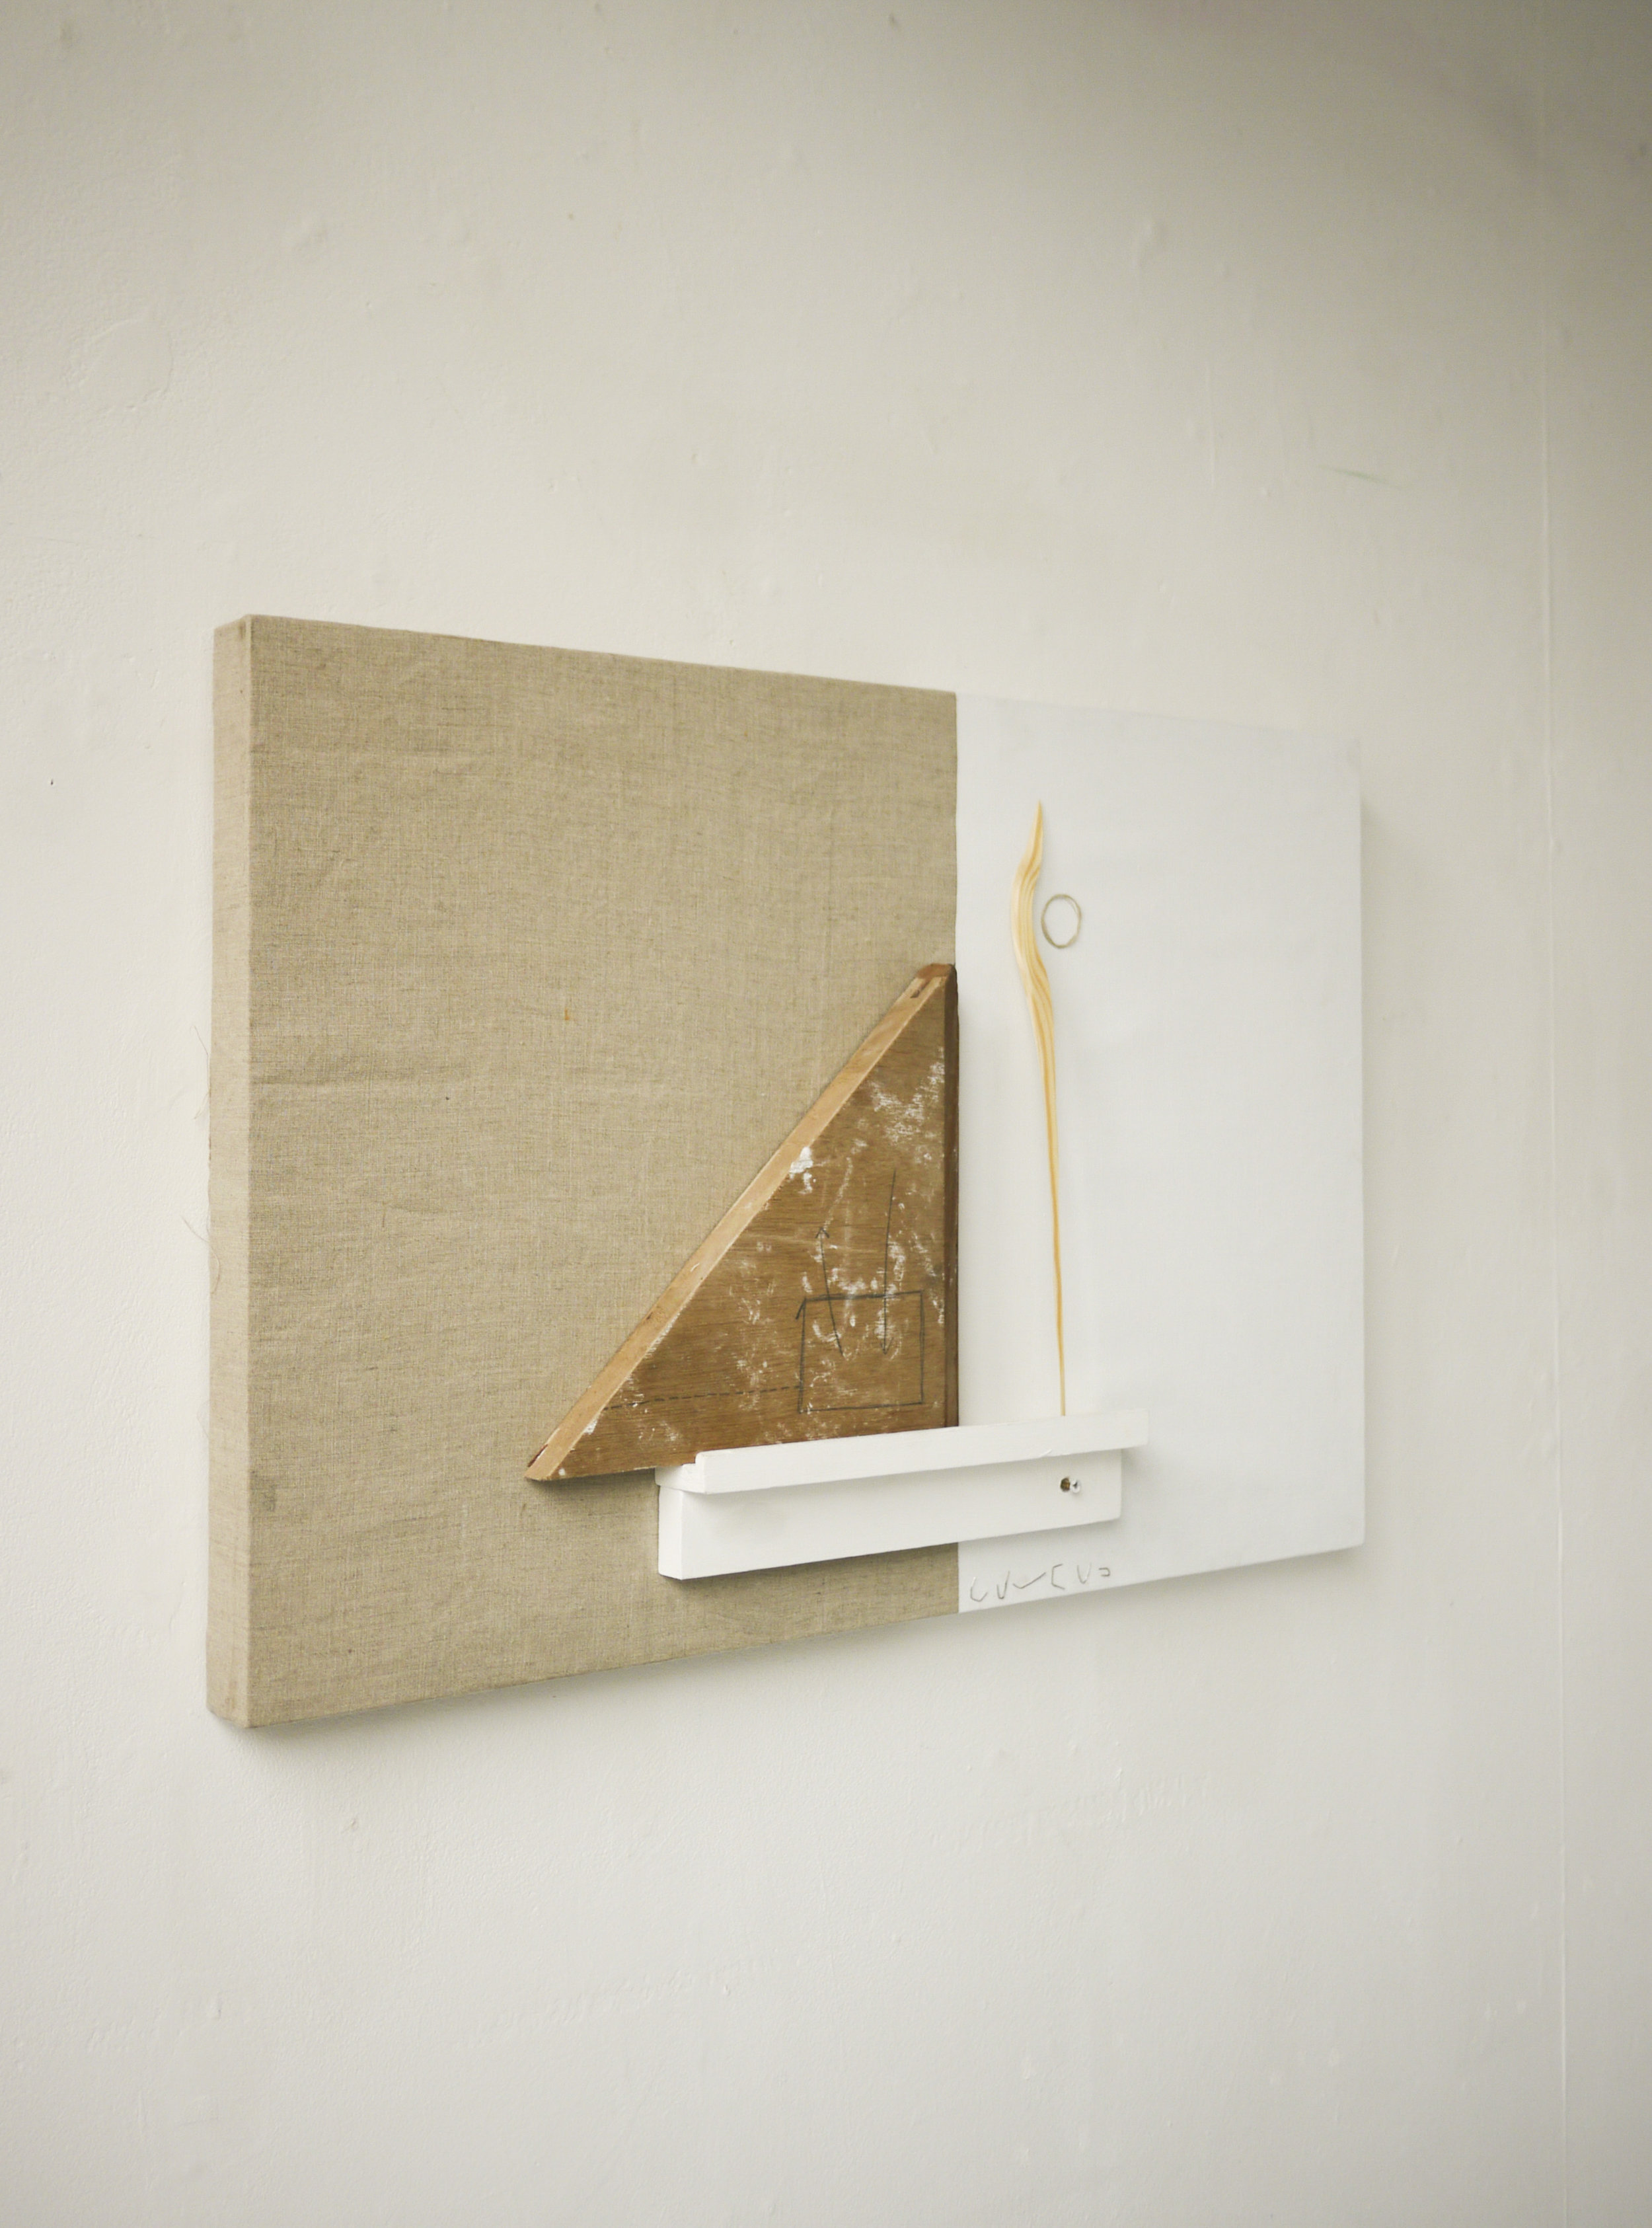 Per Se (2019) [side view] Wood, Canvas, Staples and Acrylic on Linen. 75 x 50 x 8cm.jpg